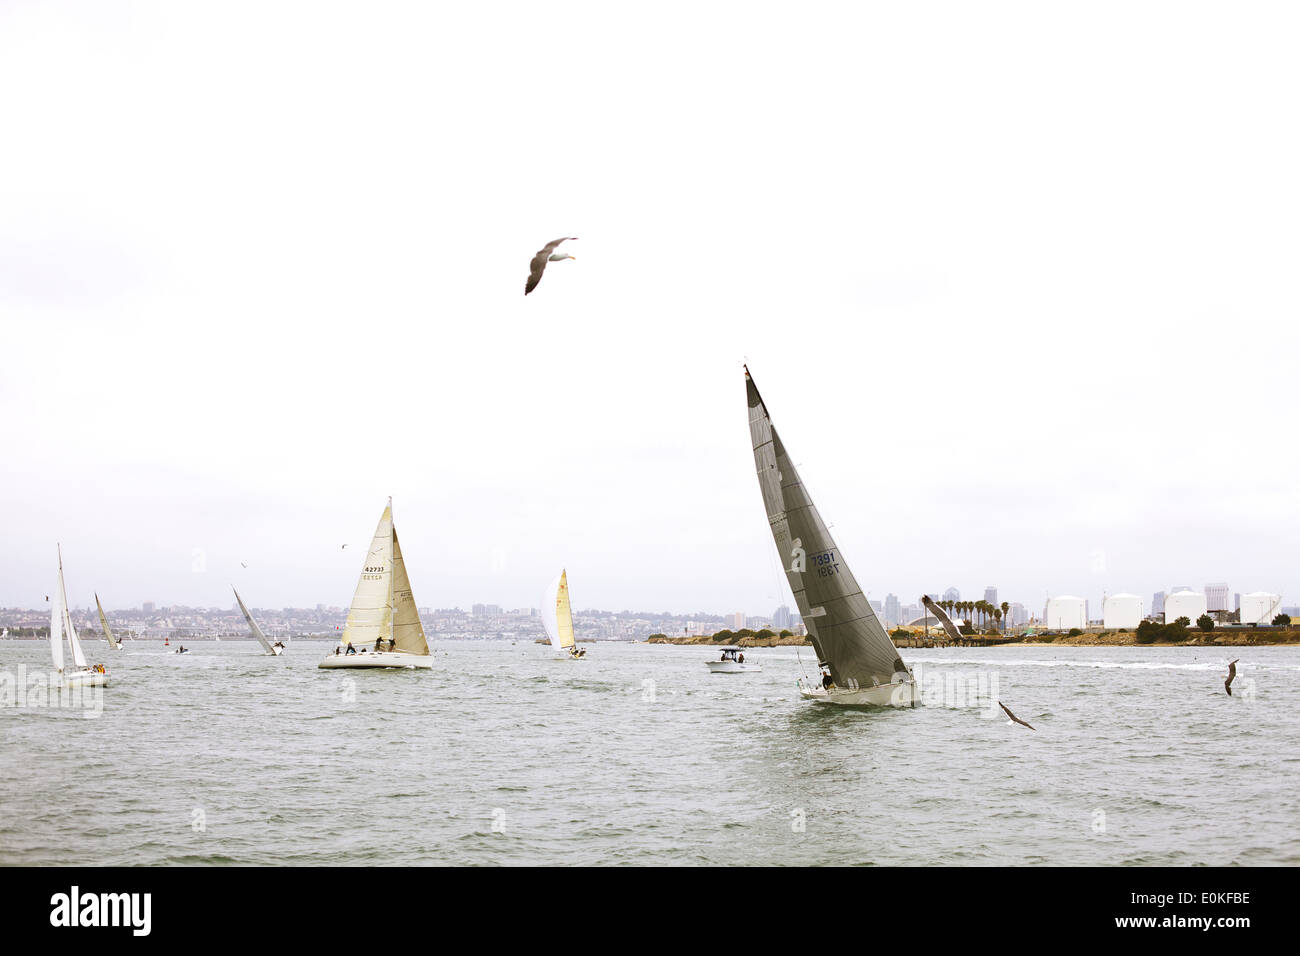 Sail boats on the Pacific Ocean off the coast of California. - Stock Image